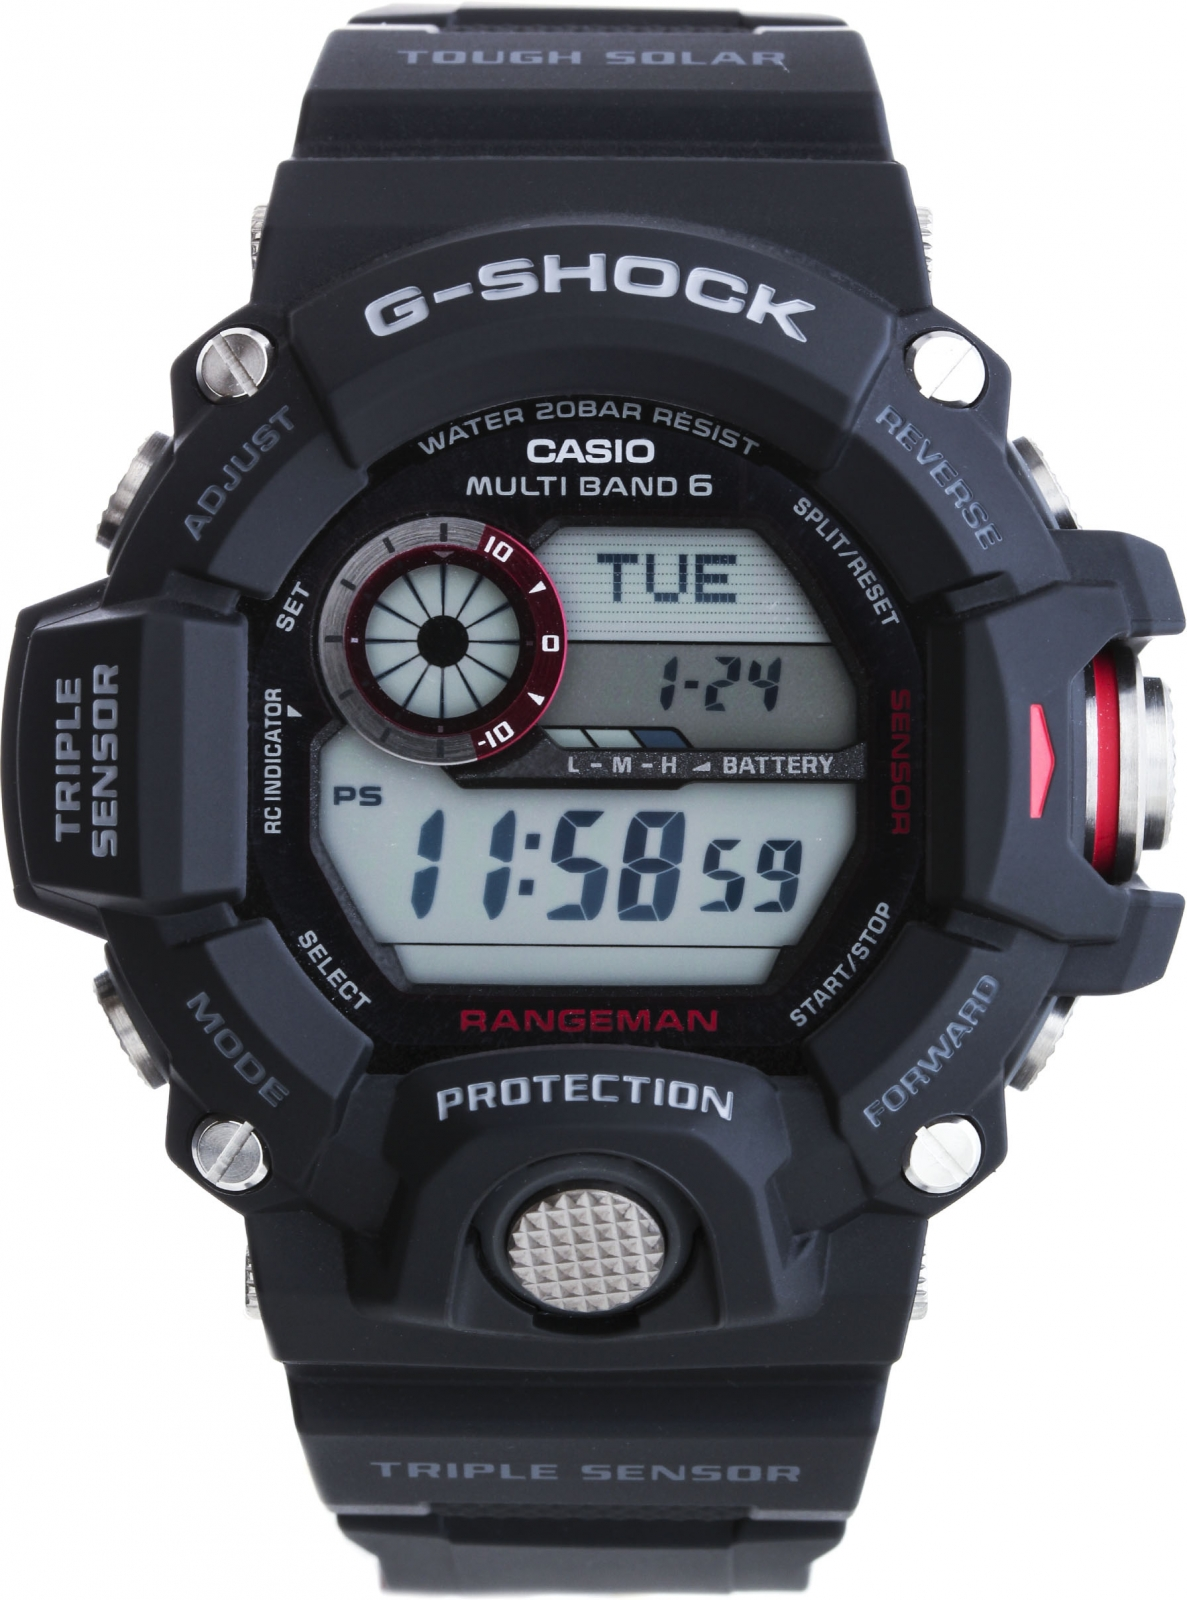 Casio G-shock GW-9400-1E часы g shock dw 5600hr 1e casio